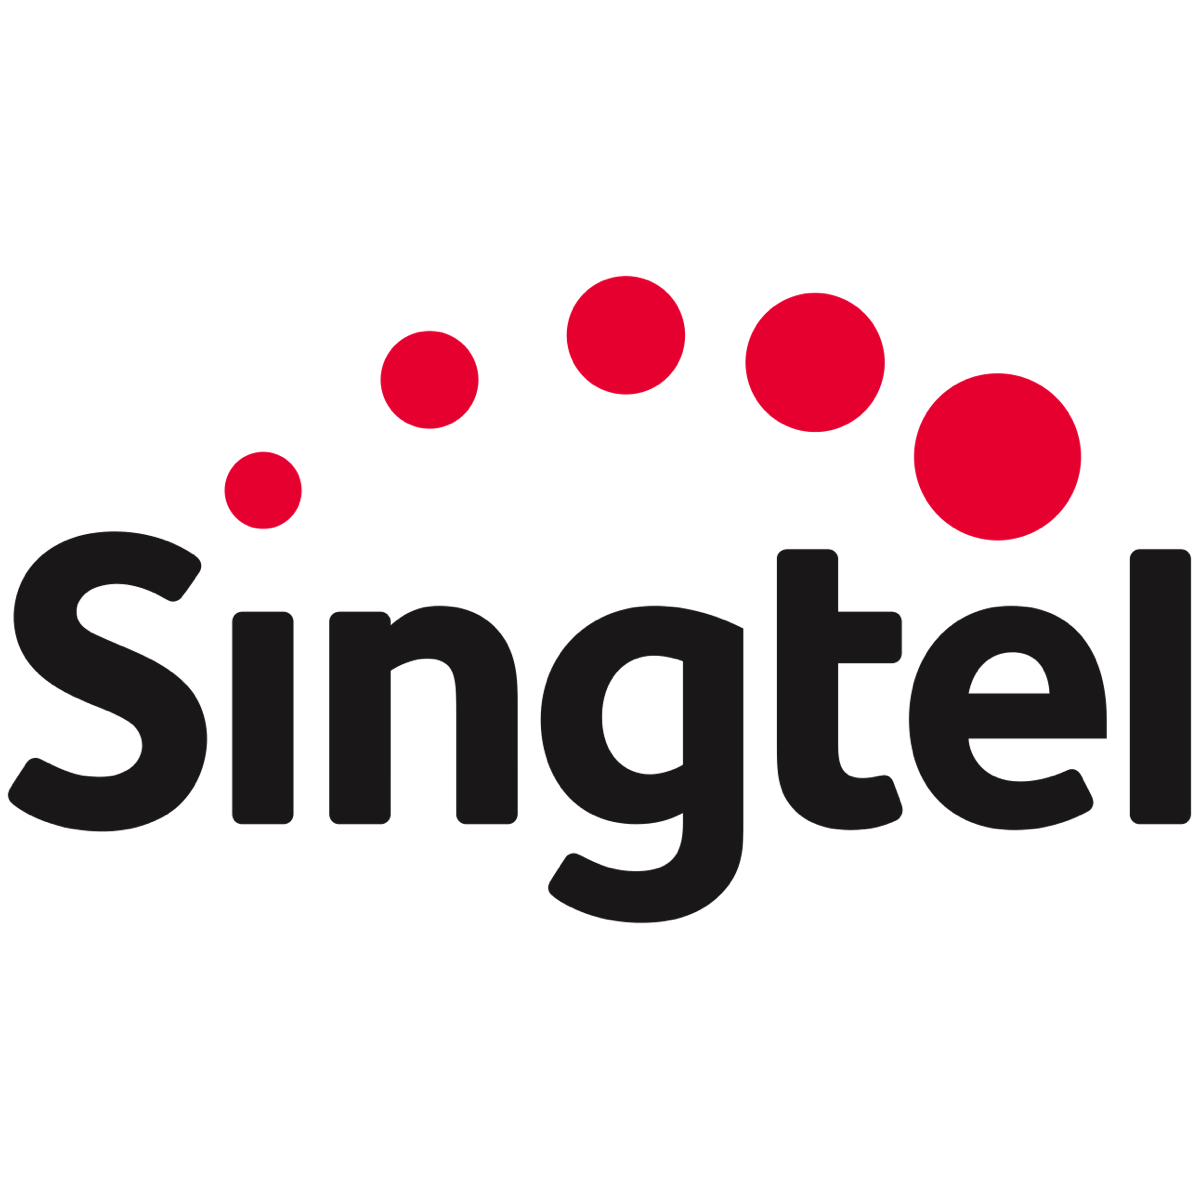 Singtel - OCBC Investment 2017-03-31: Industry outlook supportive of key growth drivers